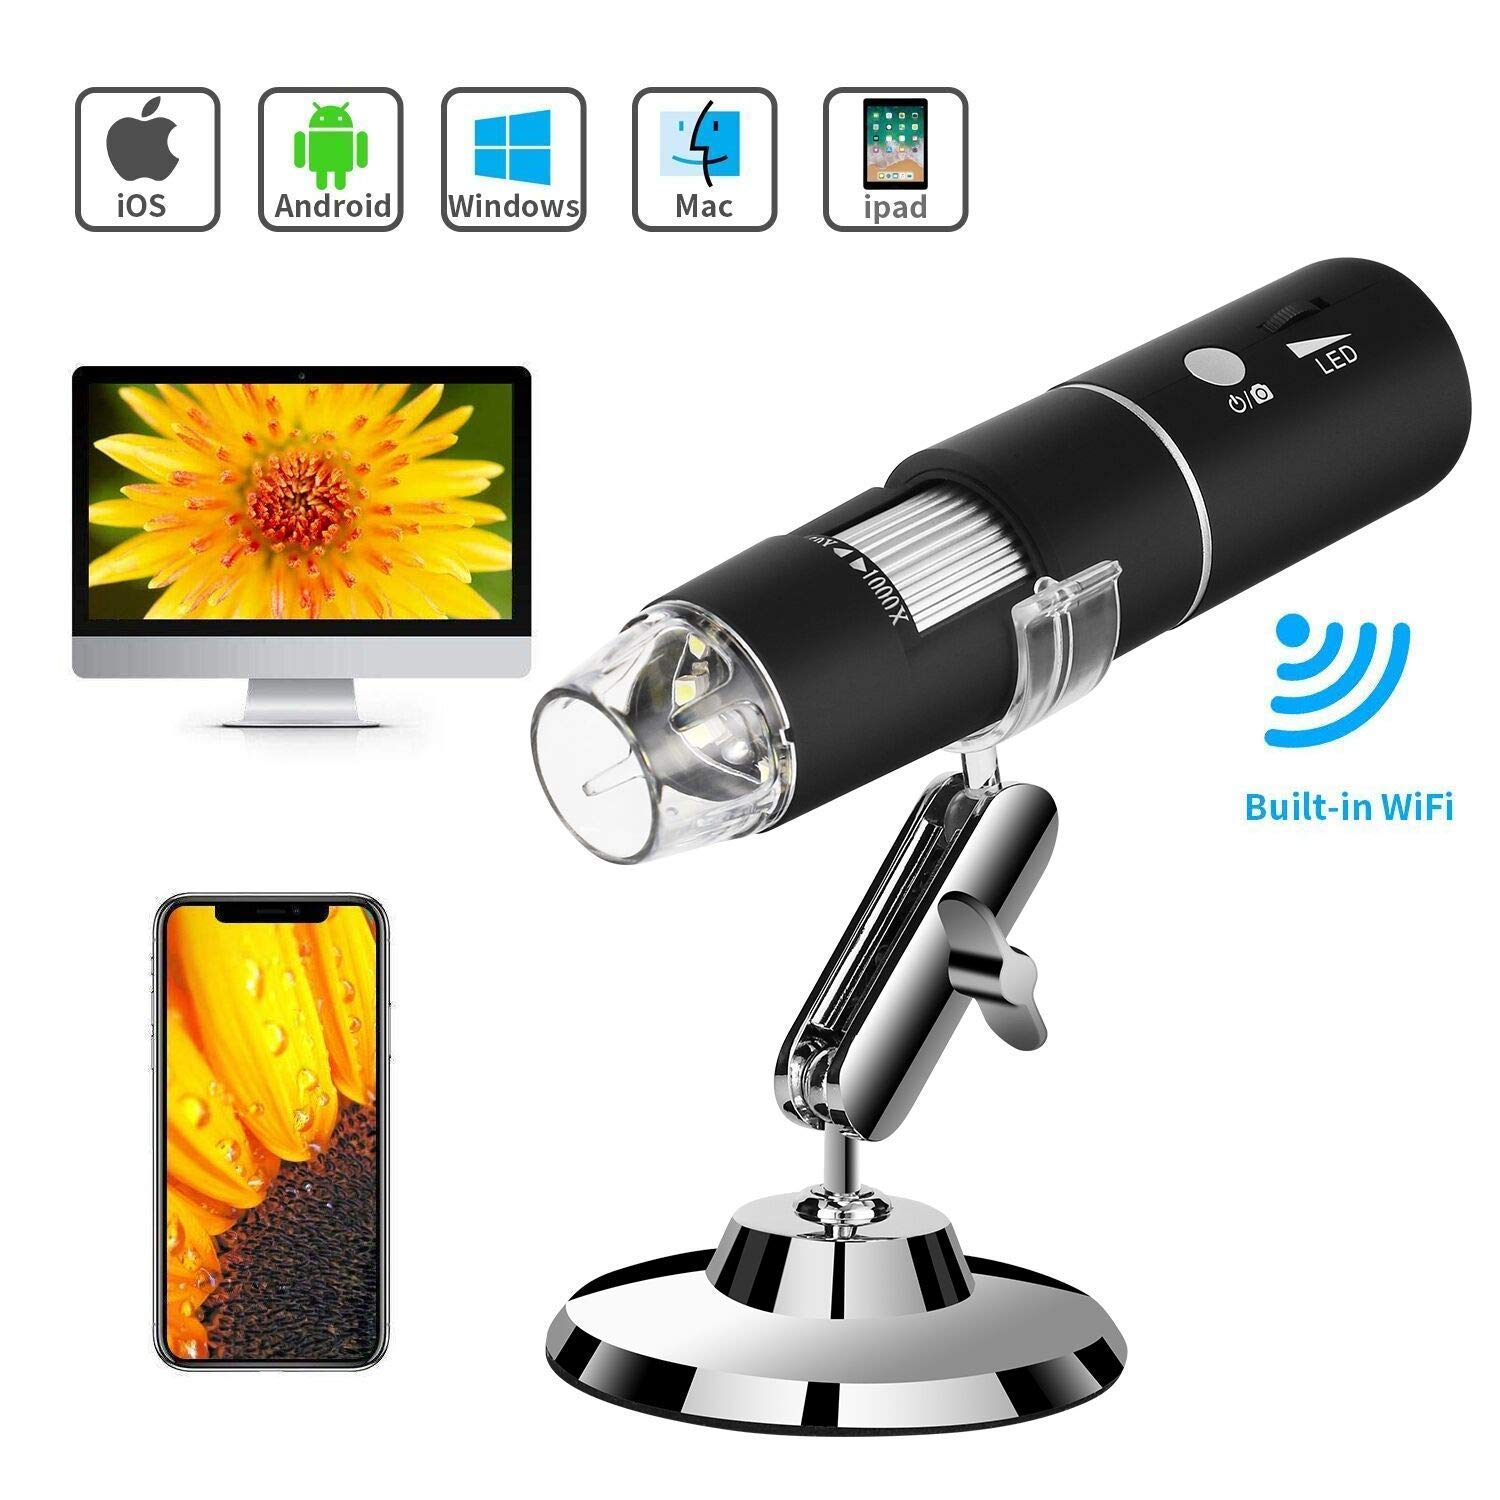 WiFi USB Microscope, TSAAGAN Built in WiFi Wireless Digital Microscope Camera with 1080P HD 2MP 50x to 1000x Magnification Endoscope for Android, iOS, Smartphone, Tablet, Widows, iPad, Mac PC by TSAAGAN